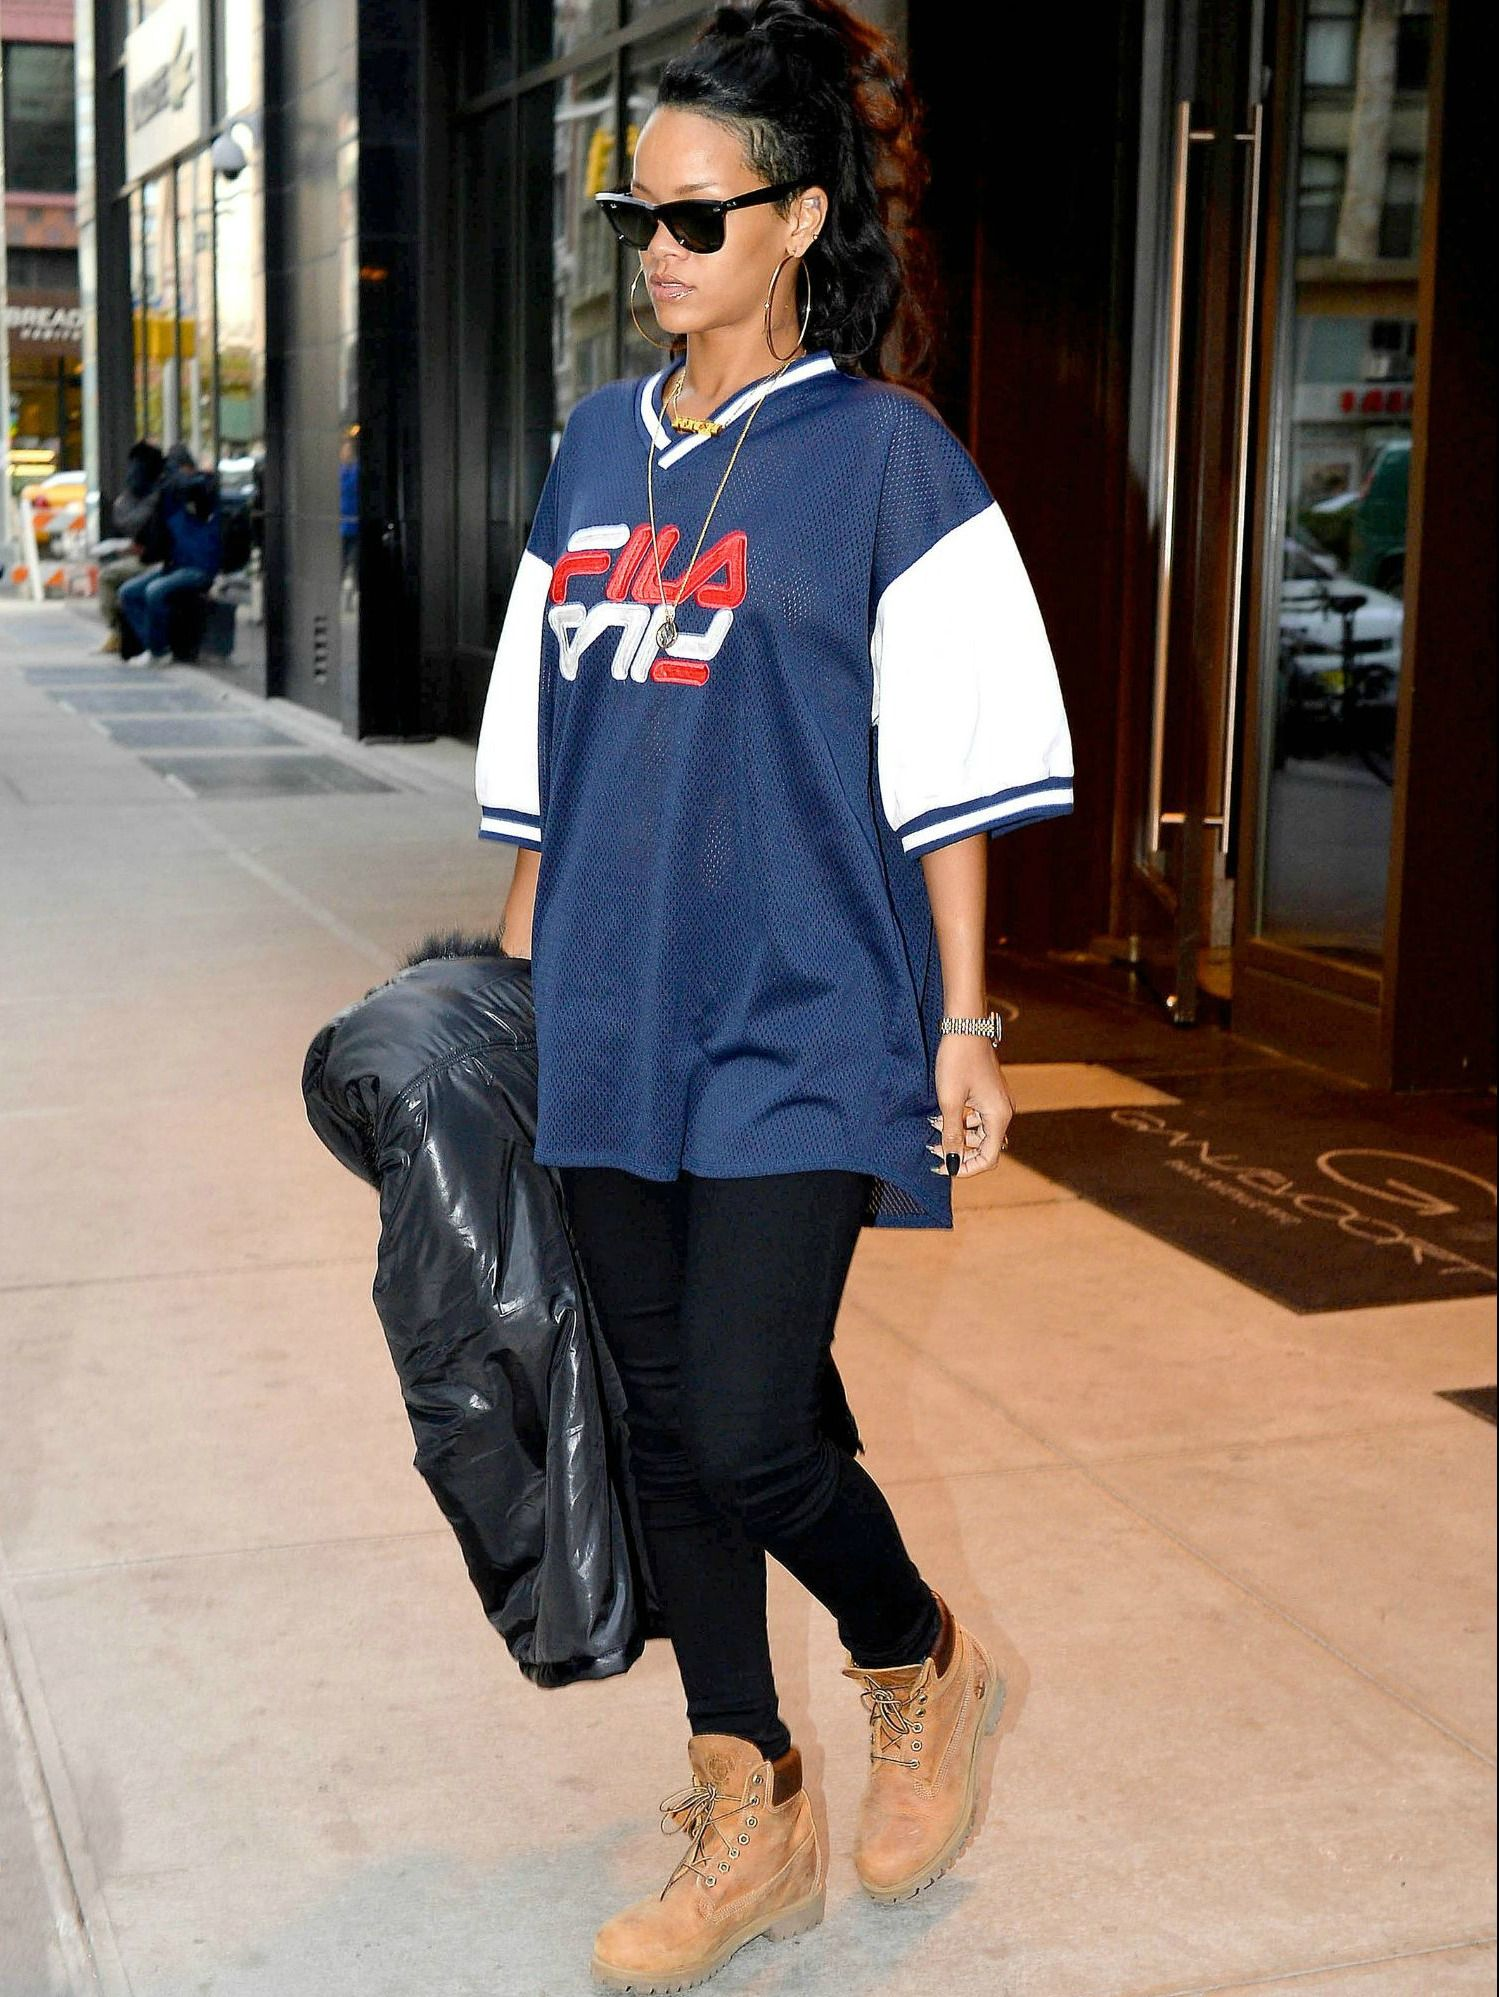 Rihanna hits the streets of NYC in style with these Timberland 6